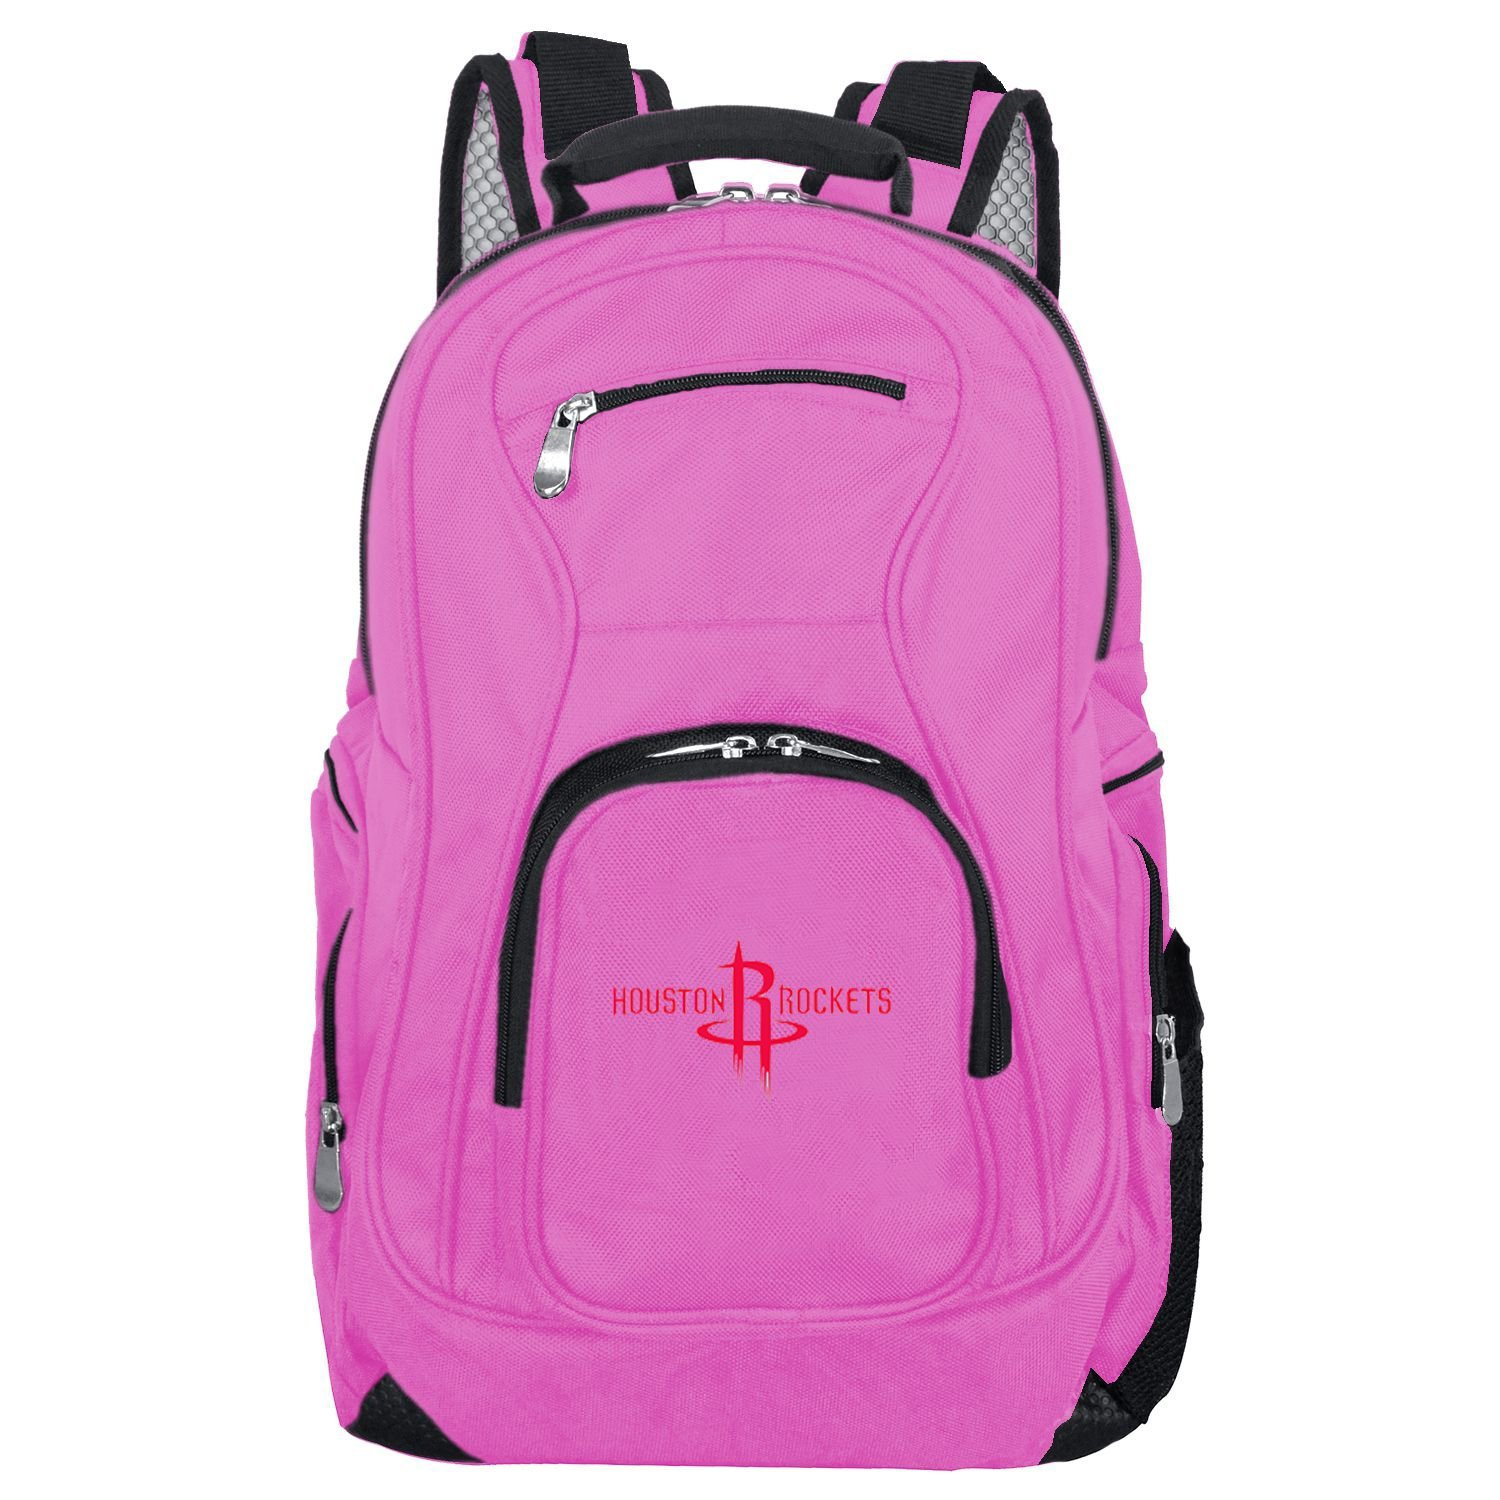 NBA Houston Rockets Voyager Laptop Backpack, 19-inches, Pink